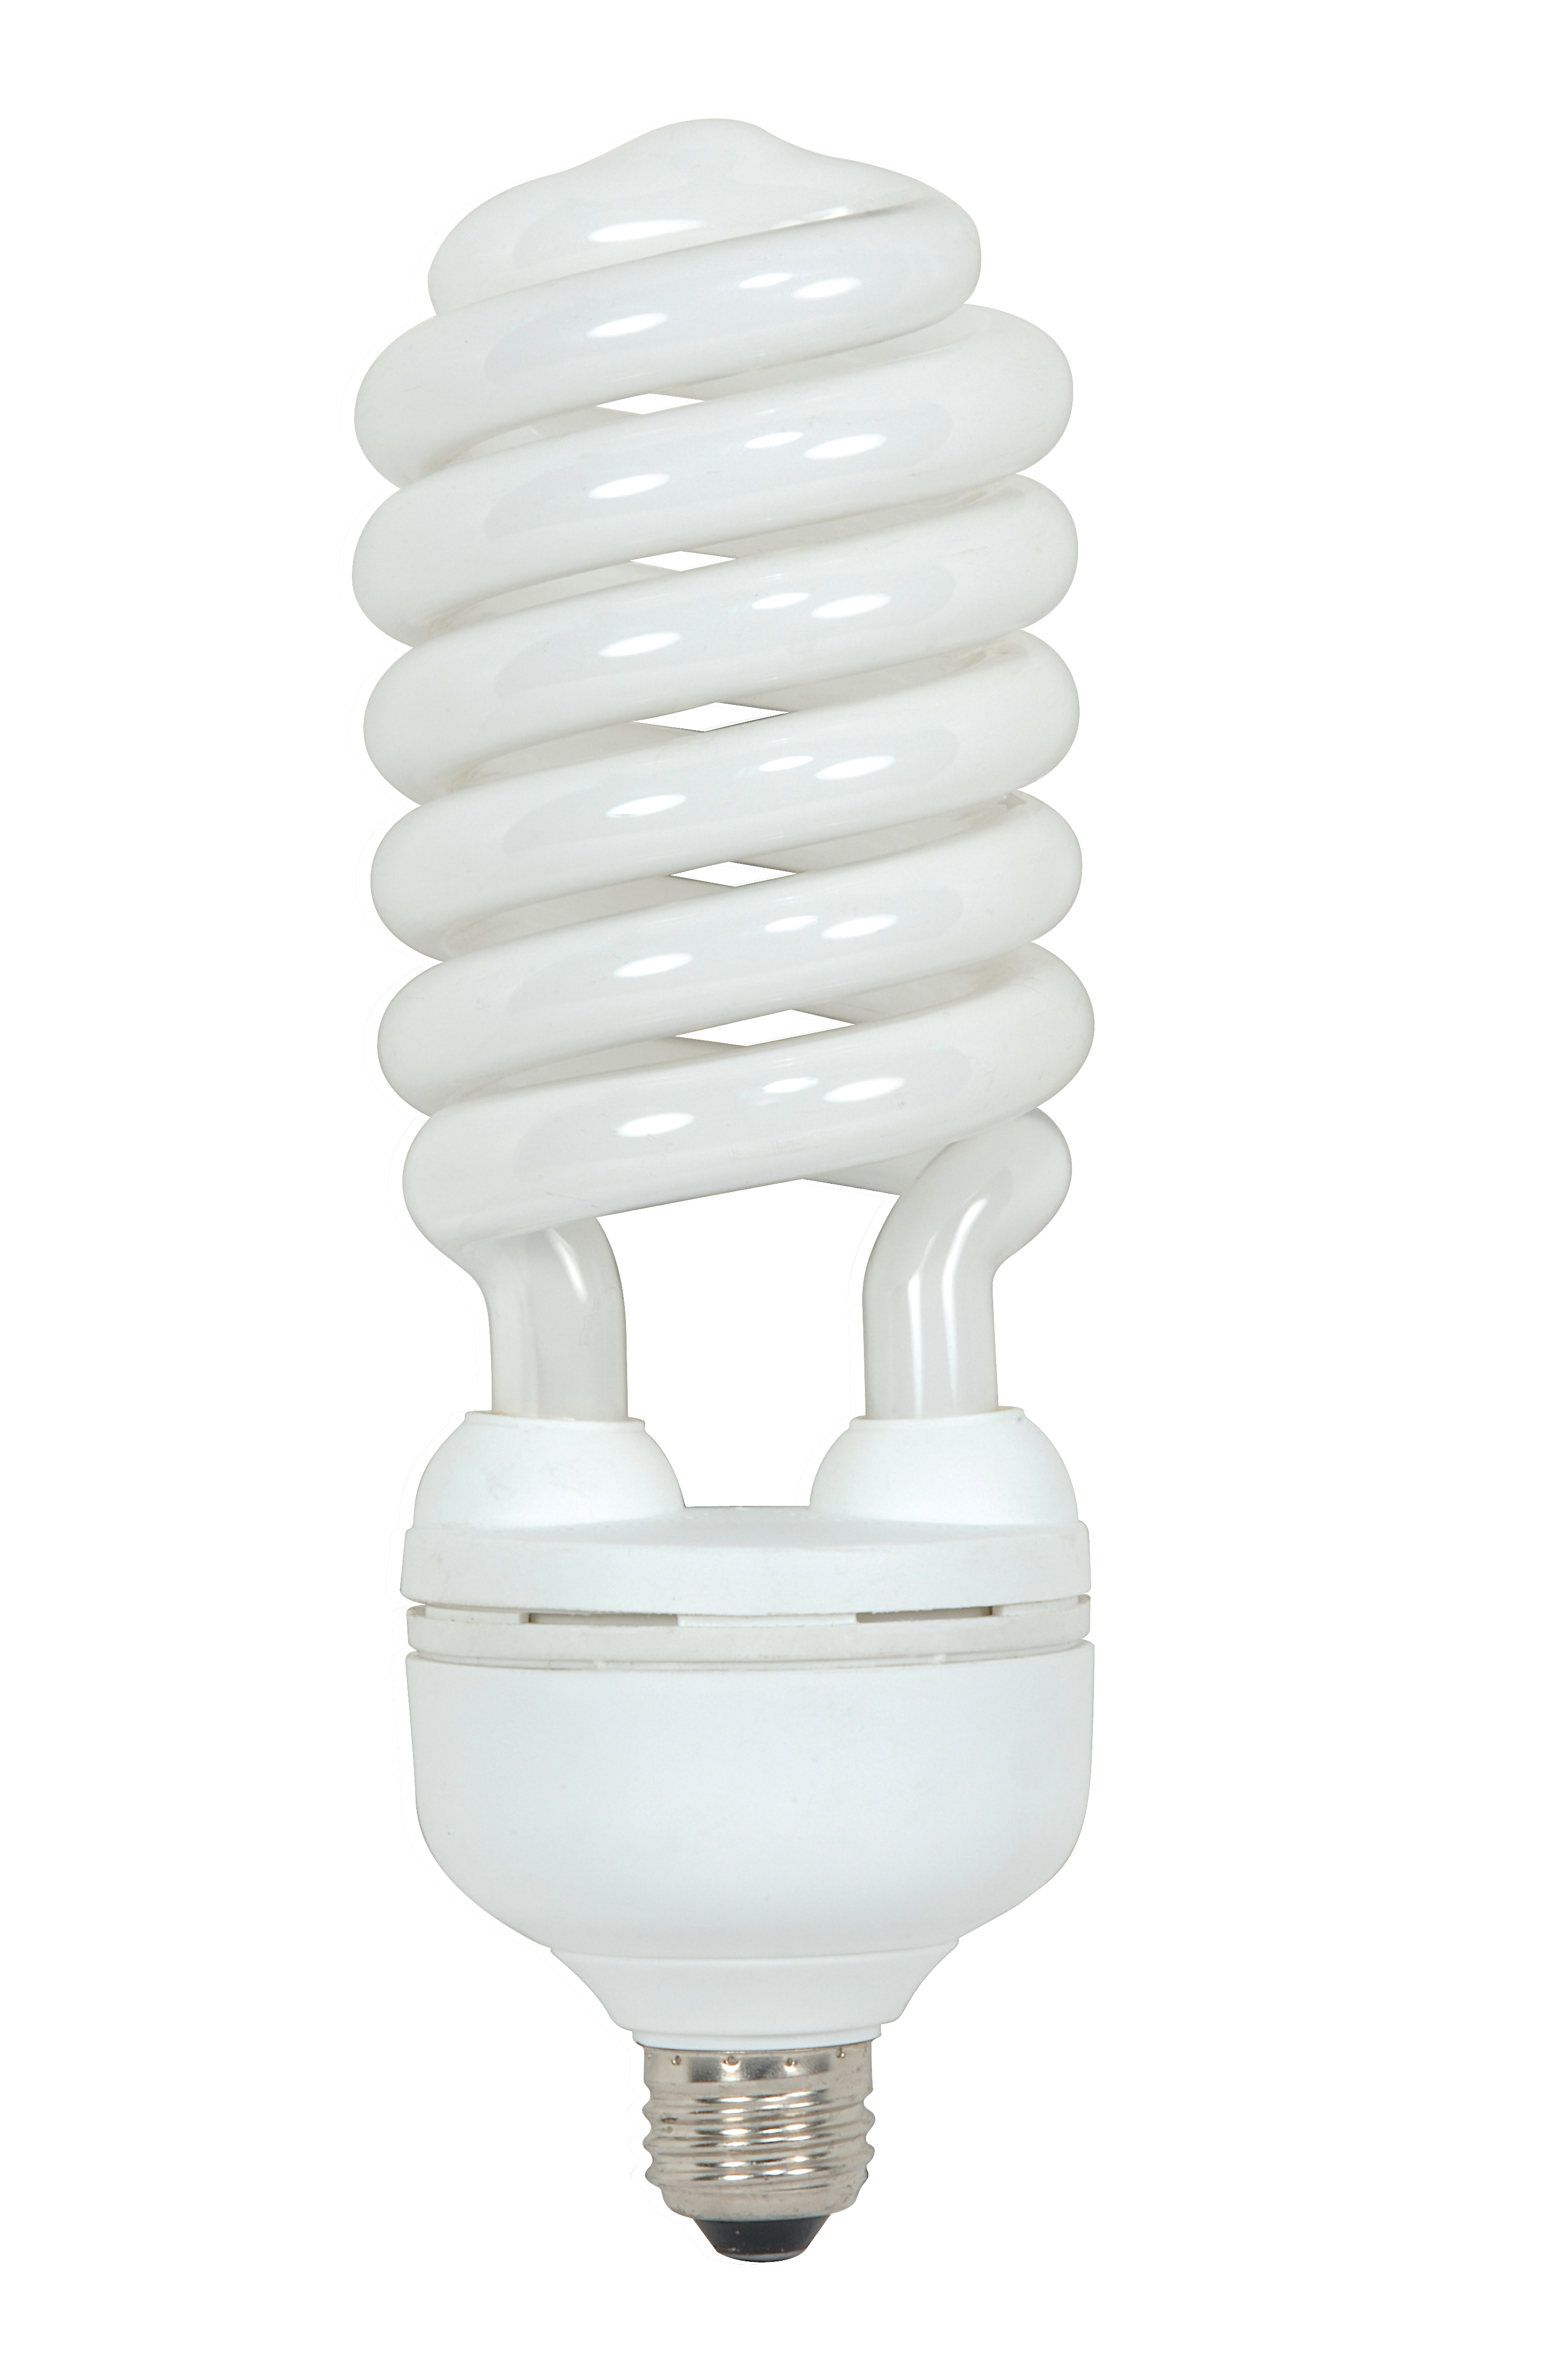 as of bulb never getting away be lighting a not how company compact fluorescent electric traditional eaton cfl throw light should disposing to is simple rid bulbs